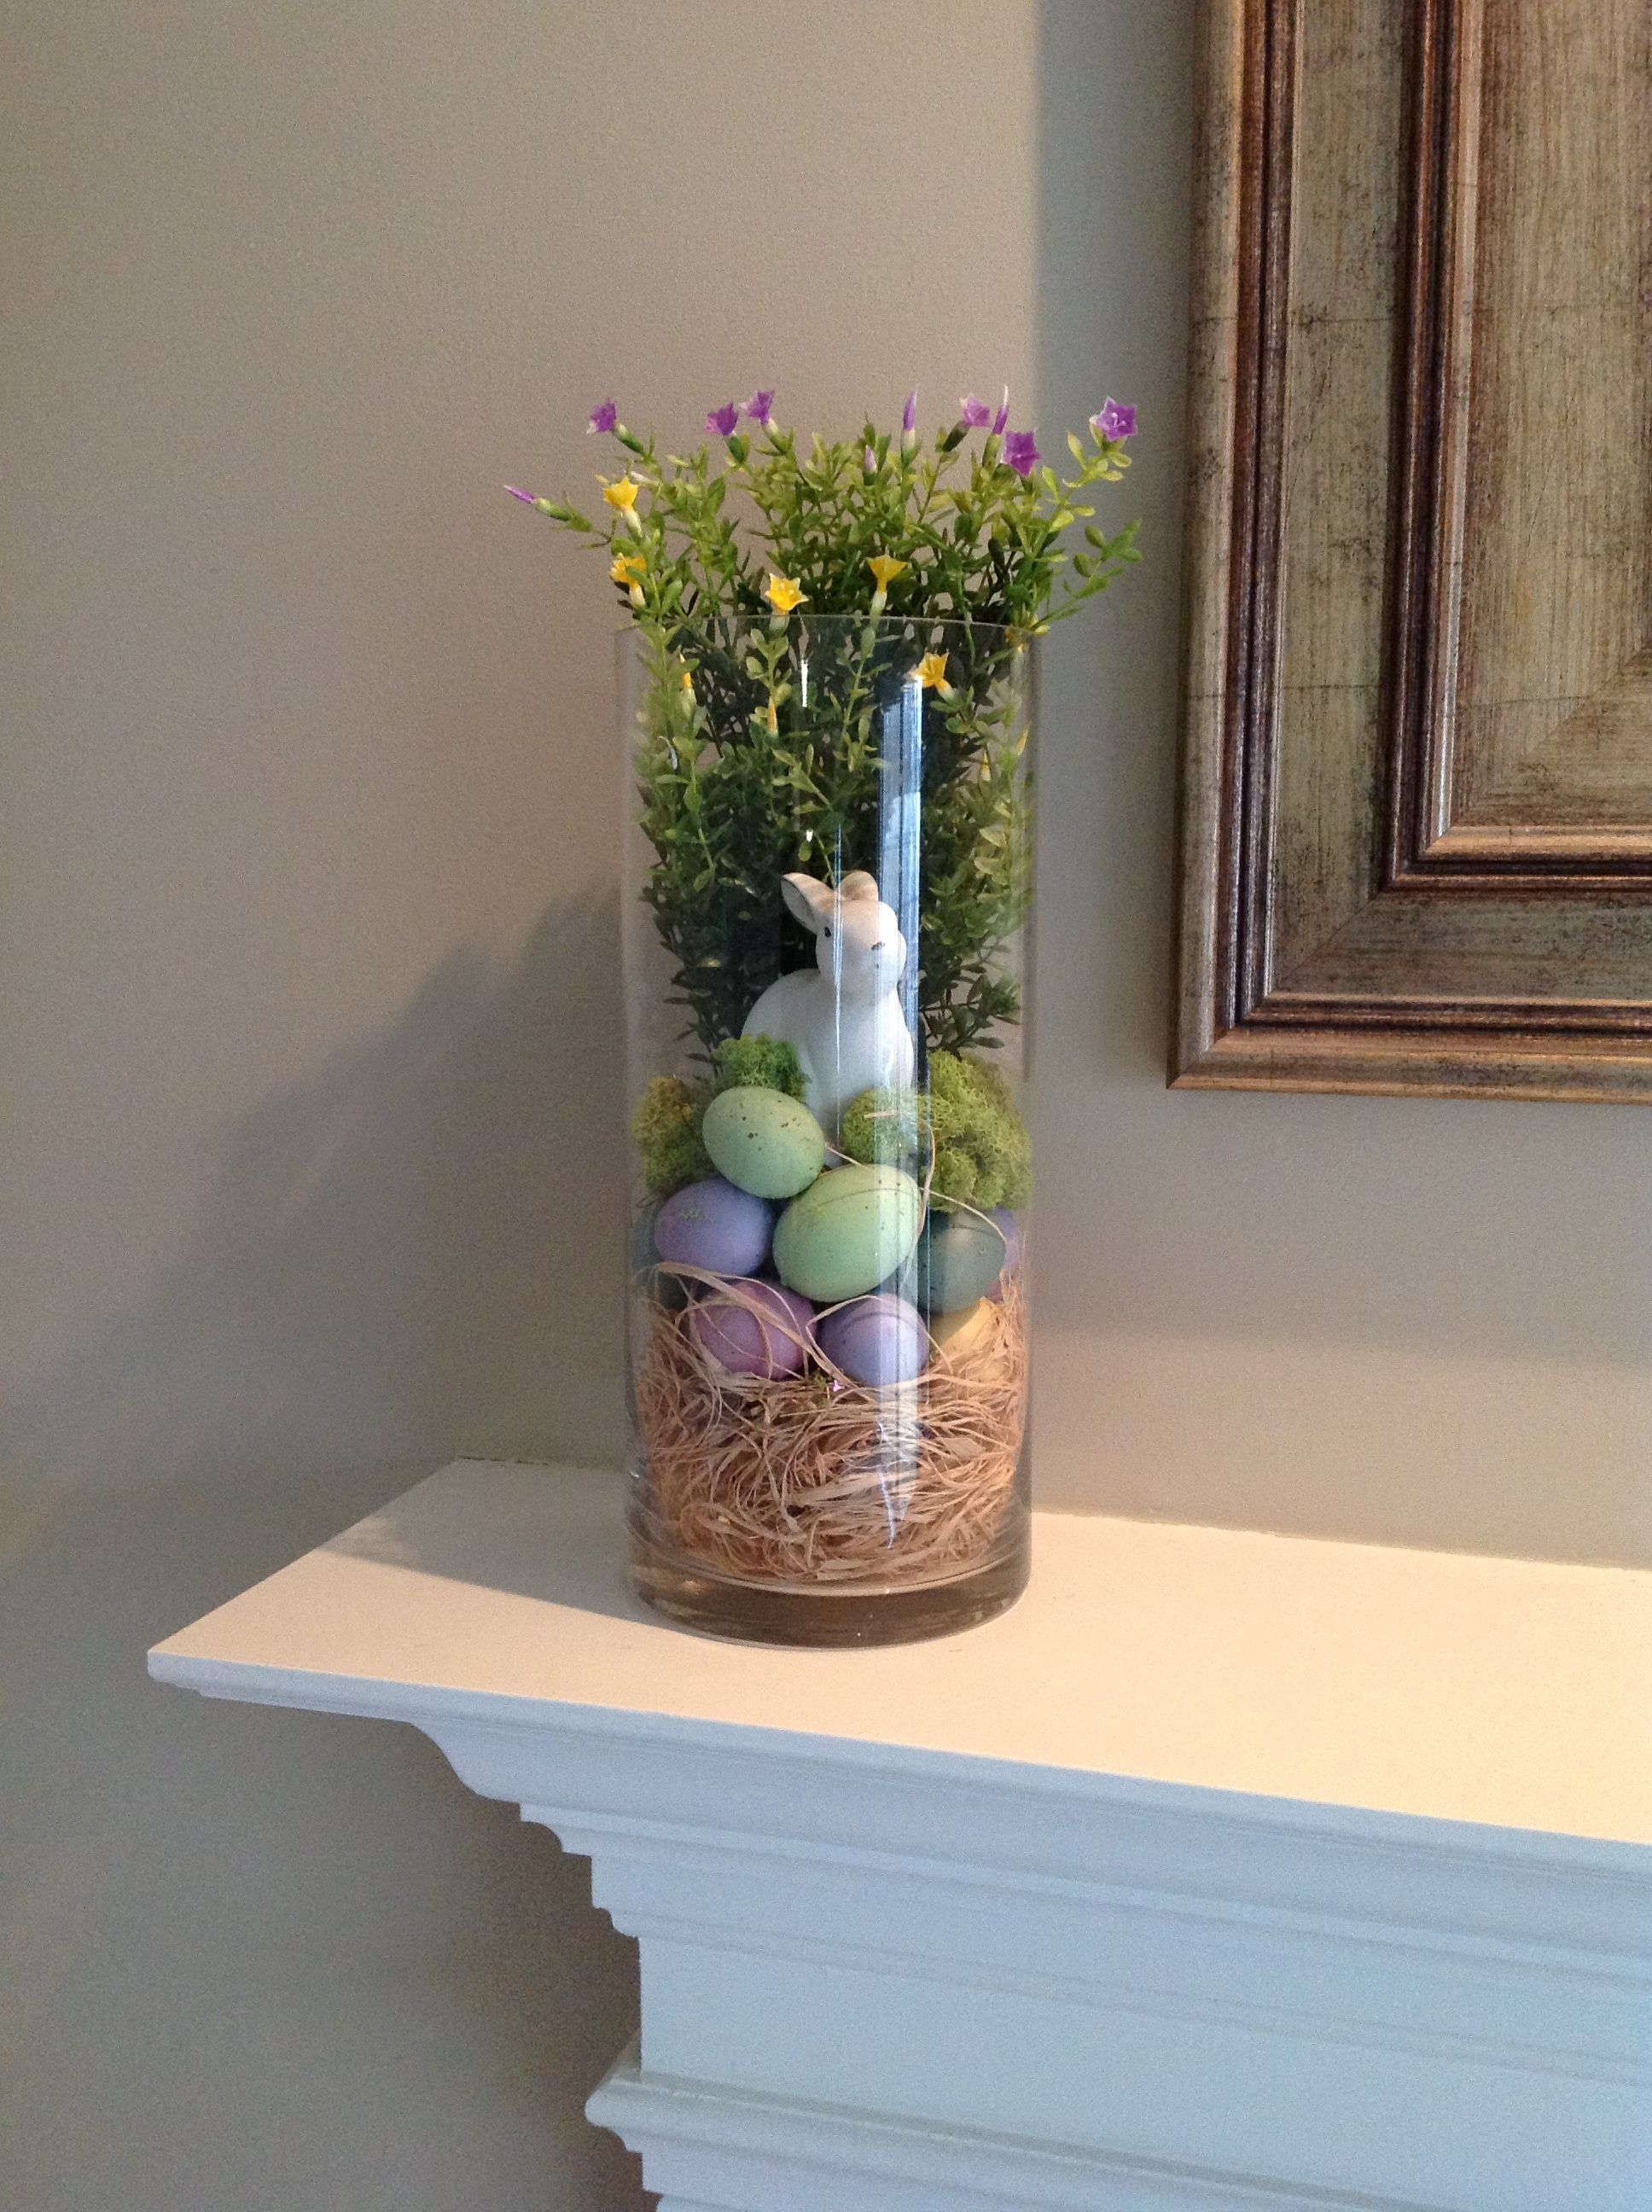 Hurricane glass vase filler for spring and easter on the mantel large glass vase decor ideas hurricane glass vase filler for spring and easter on the mantel glass vase filler ideas large glass vase filler ideas reviewsmspy